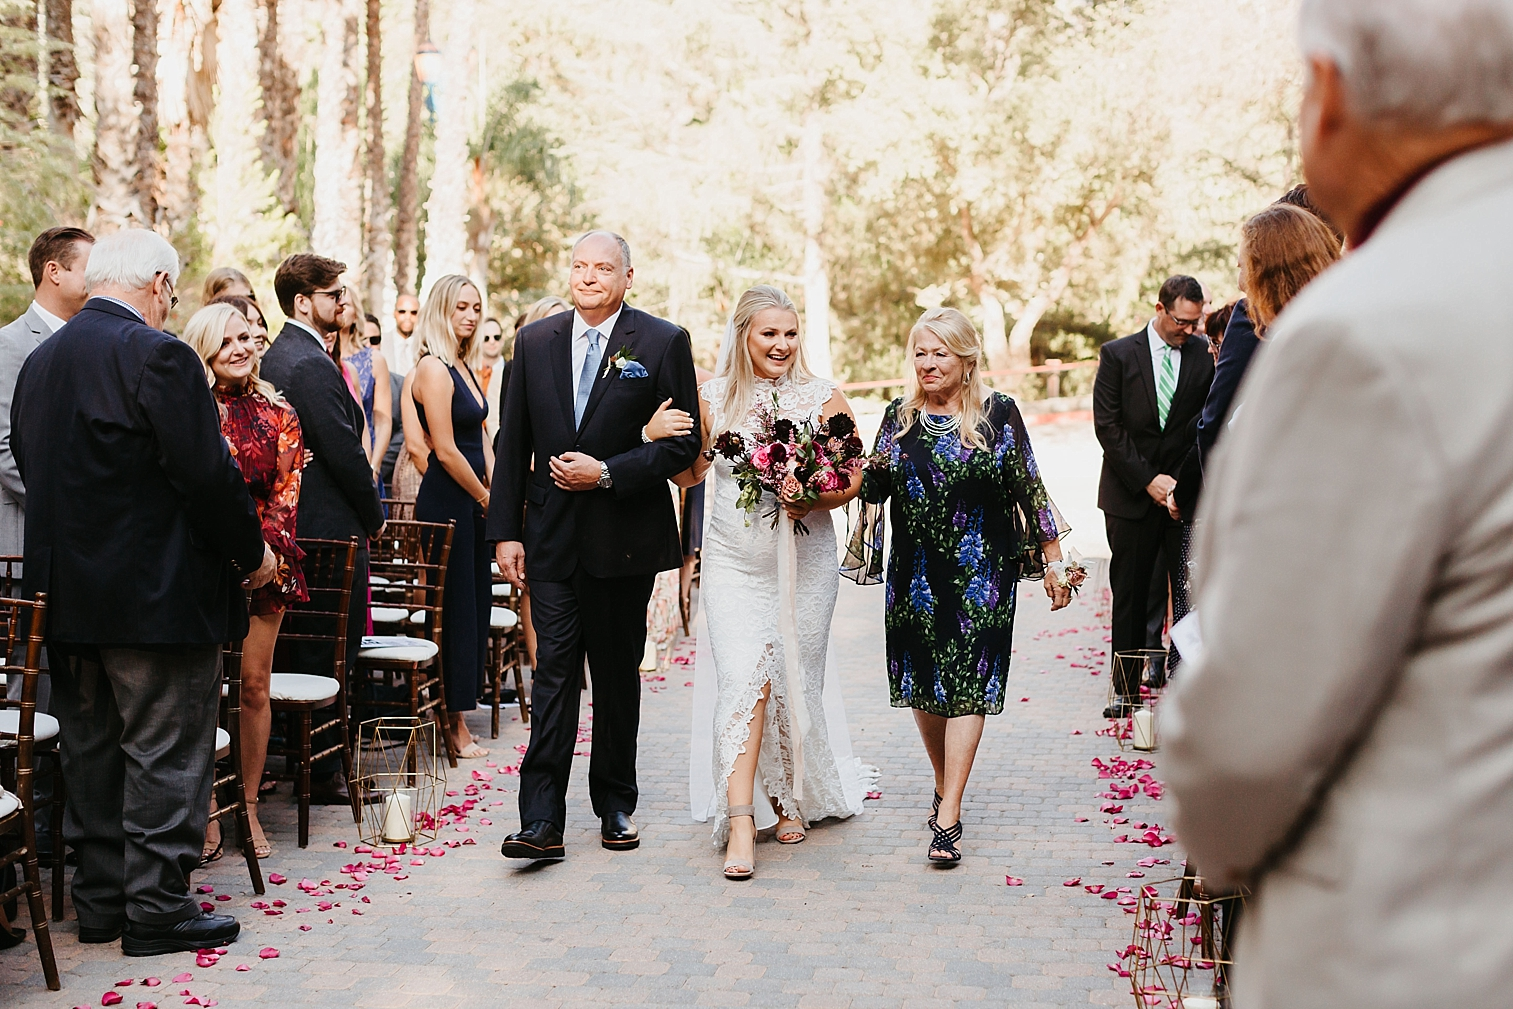 Rancho-Las-Lomas-Wedding-69.jpg